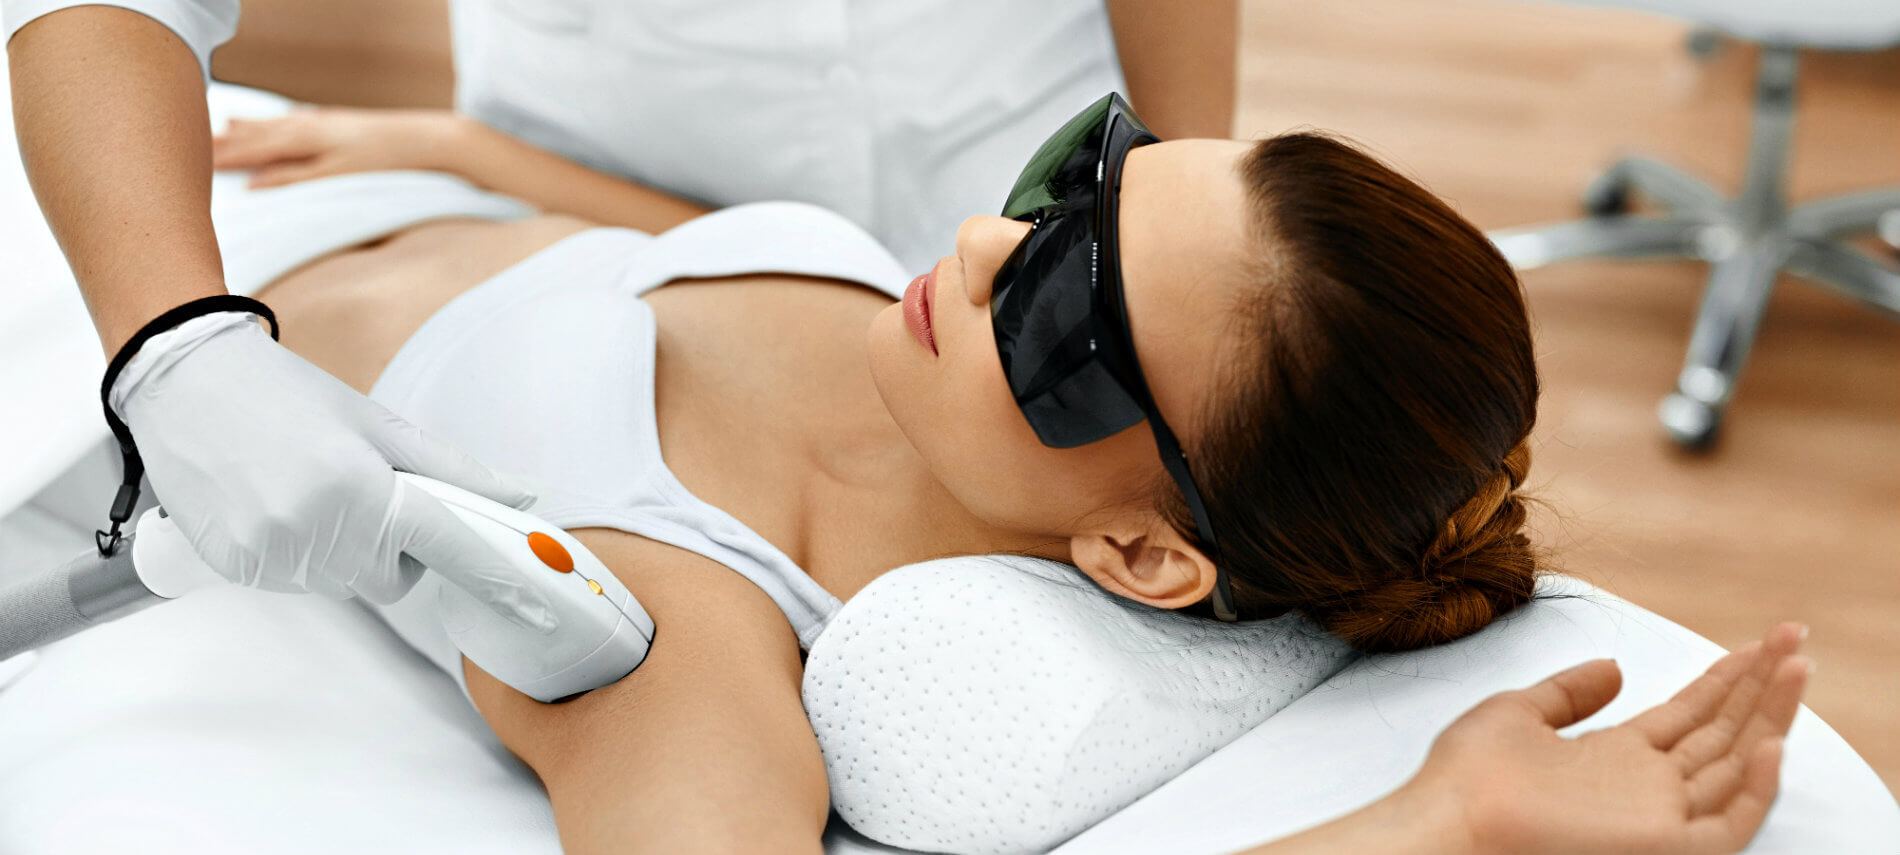 A woman in dark glasses receiving a hair treatment on her axila or armpit.